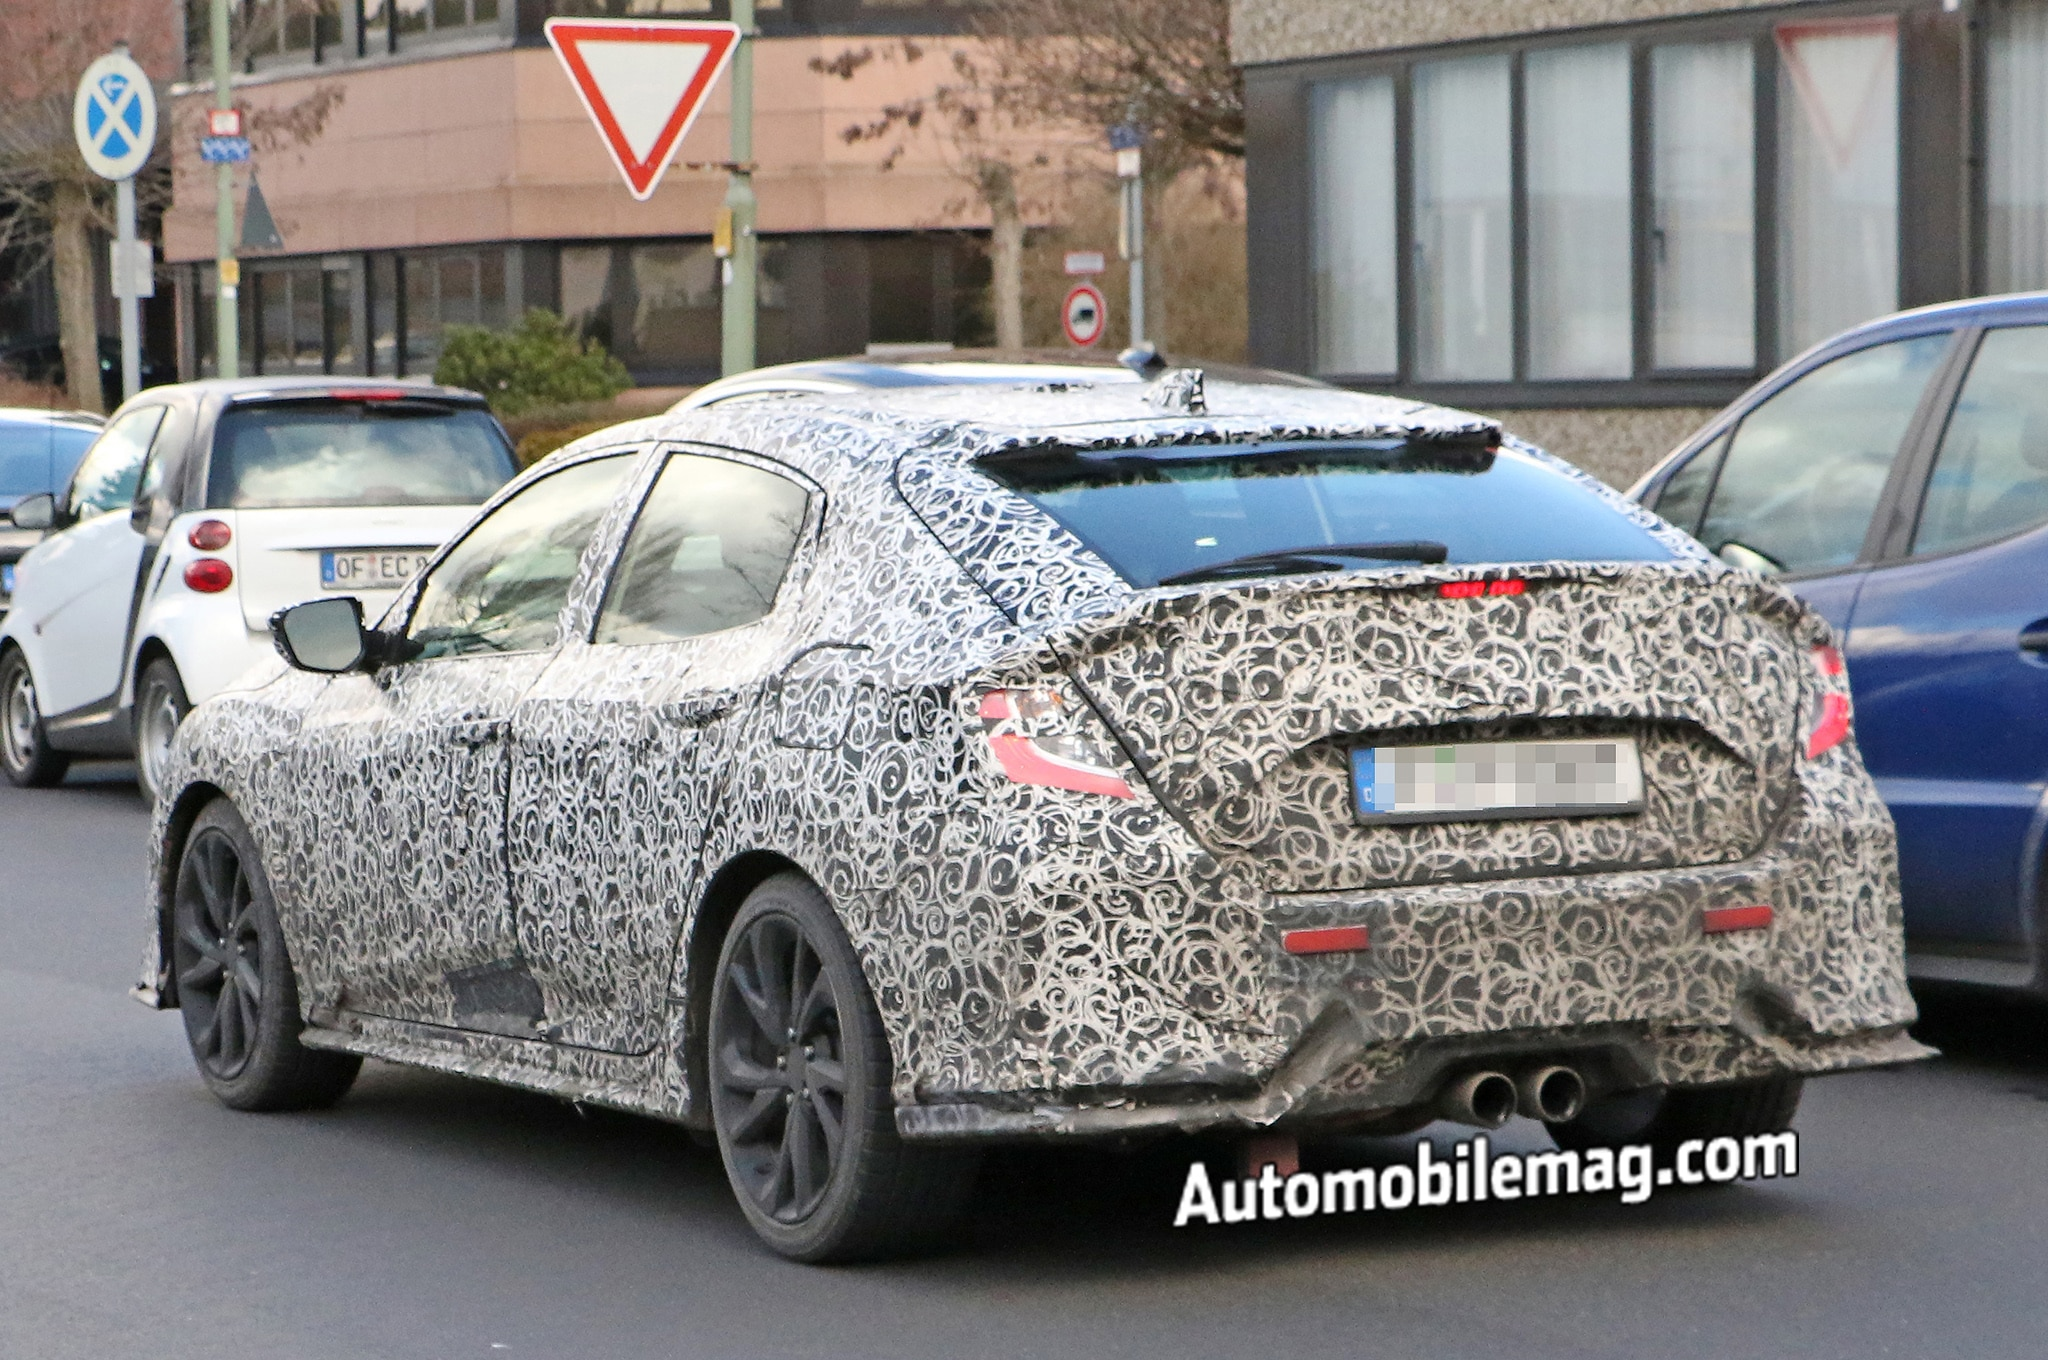 2017 Honda Civic Hatchback Spied With Rear Liftback Dual Exhausts: 2016 Civic Dual Exhaust At Woreks.co